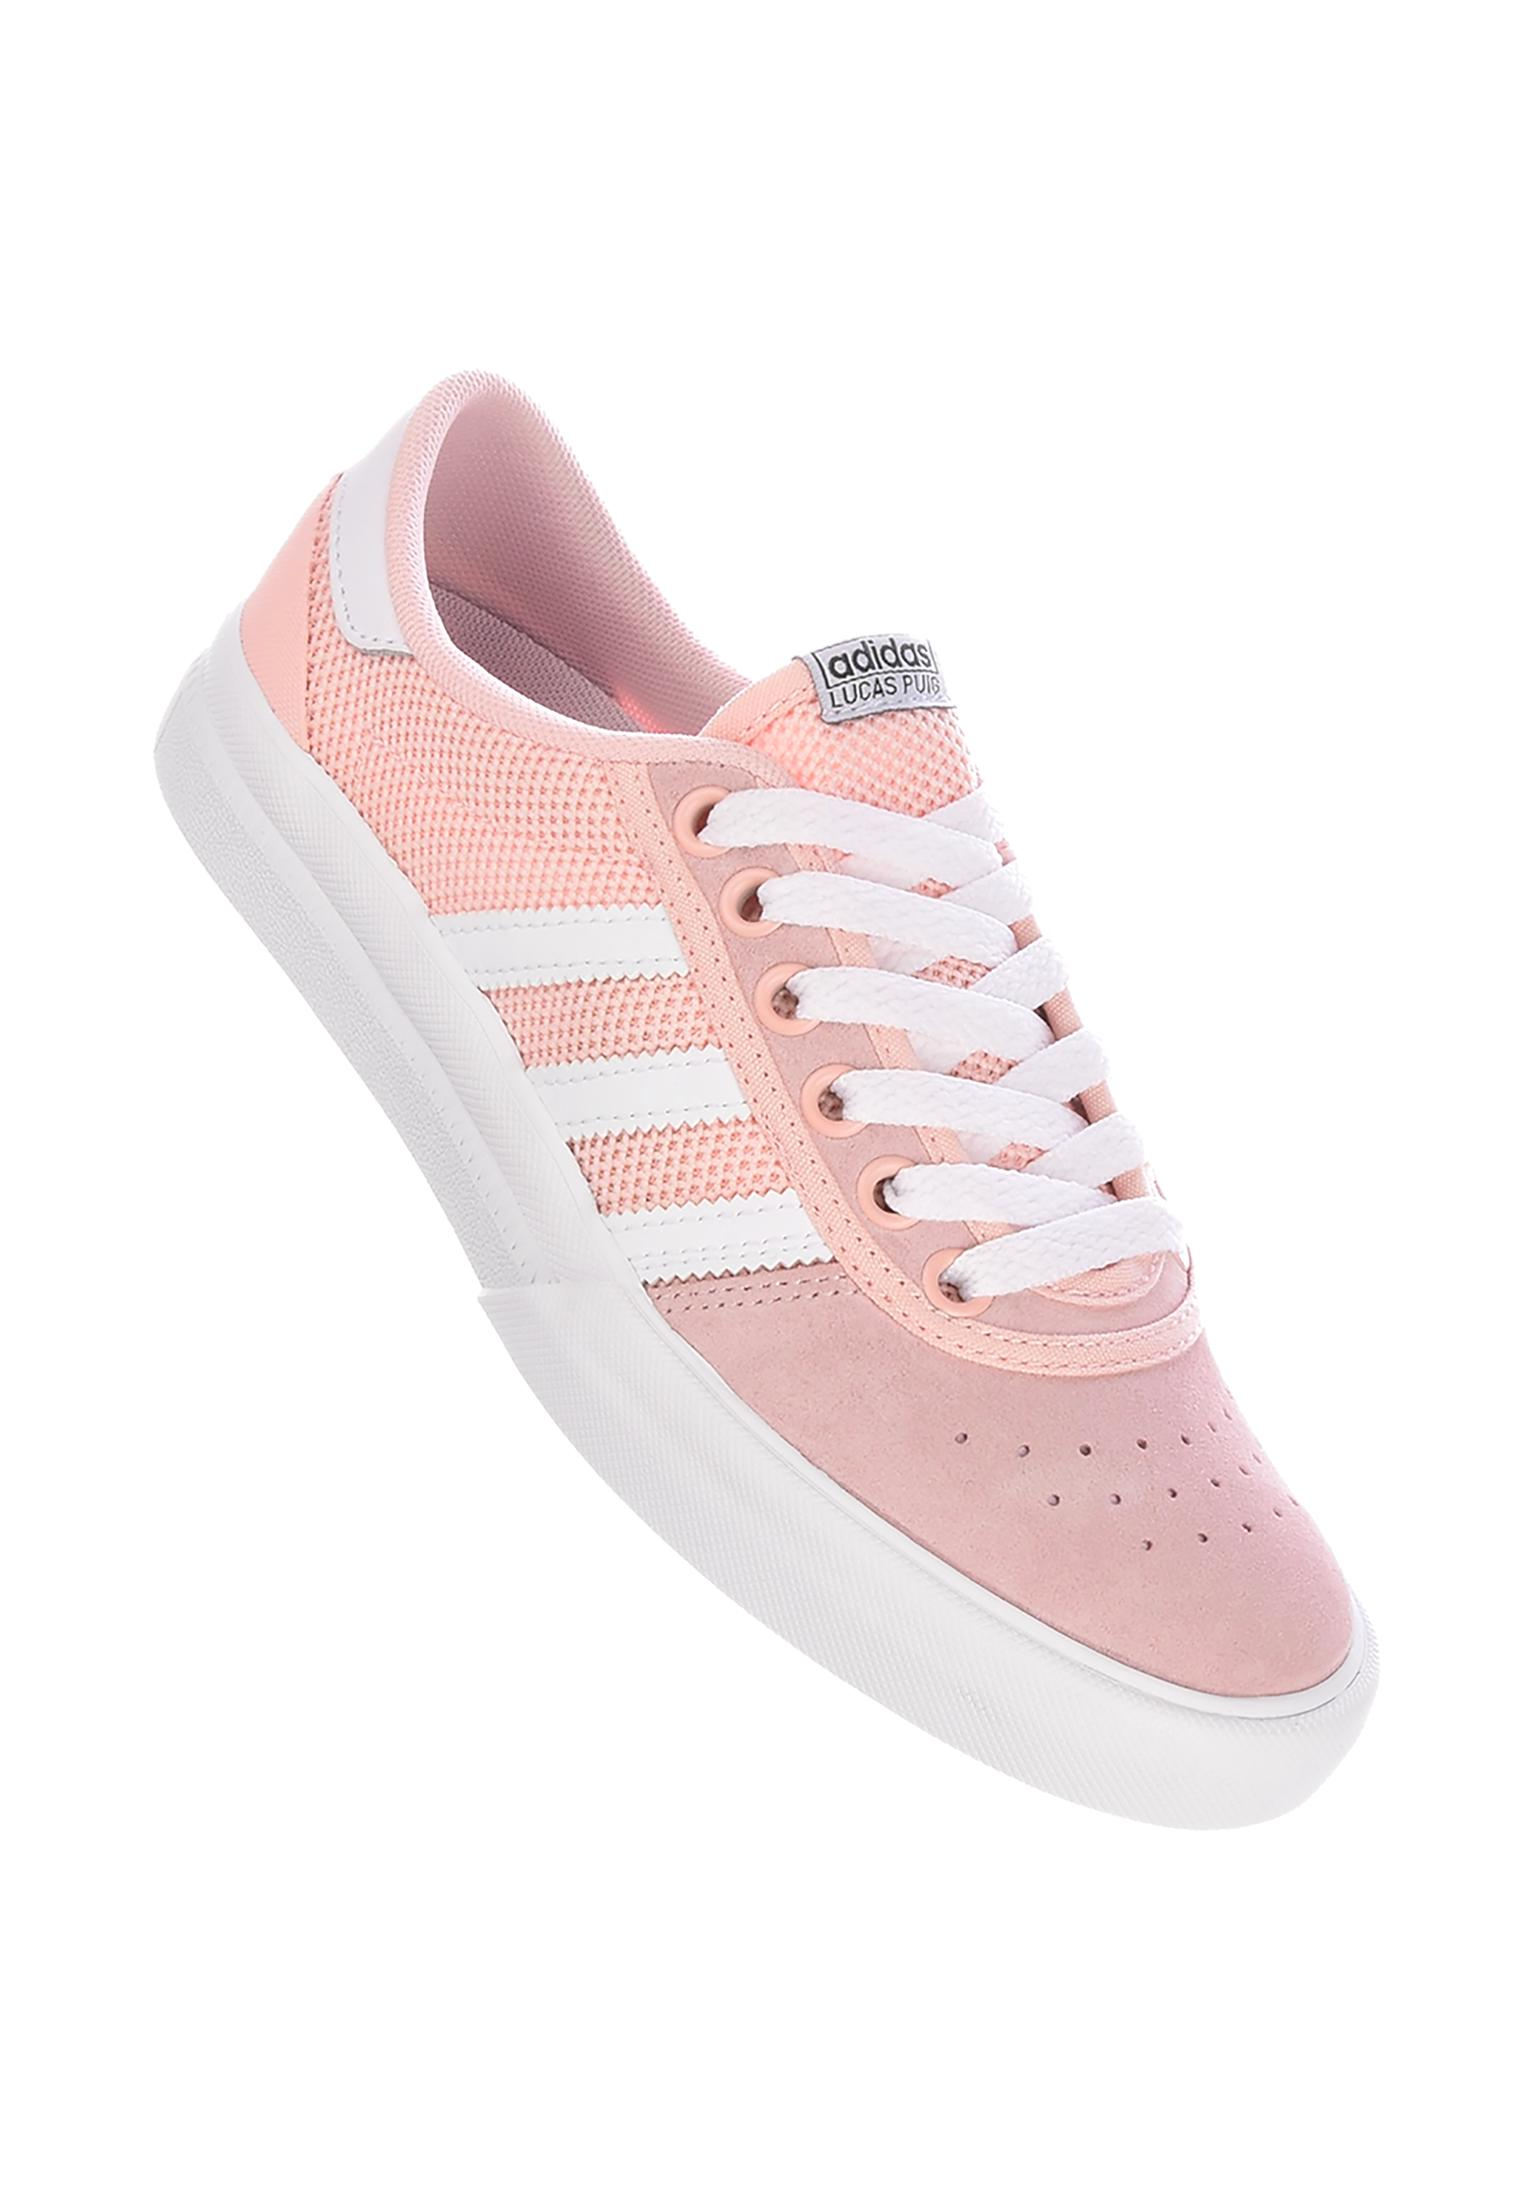 Lucas Premiere adidas All Shoes in iceypink white coreblack